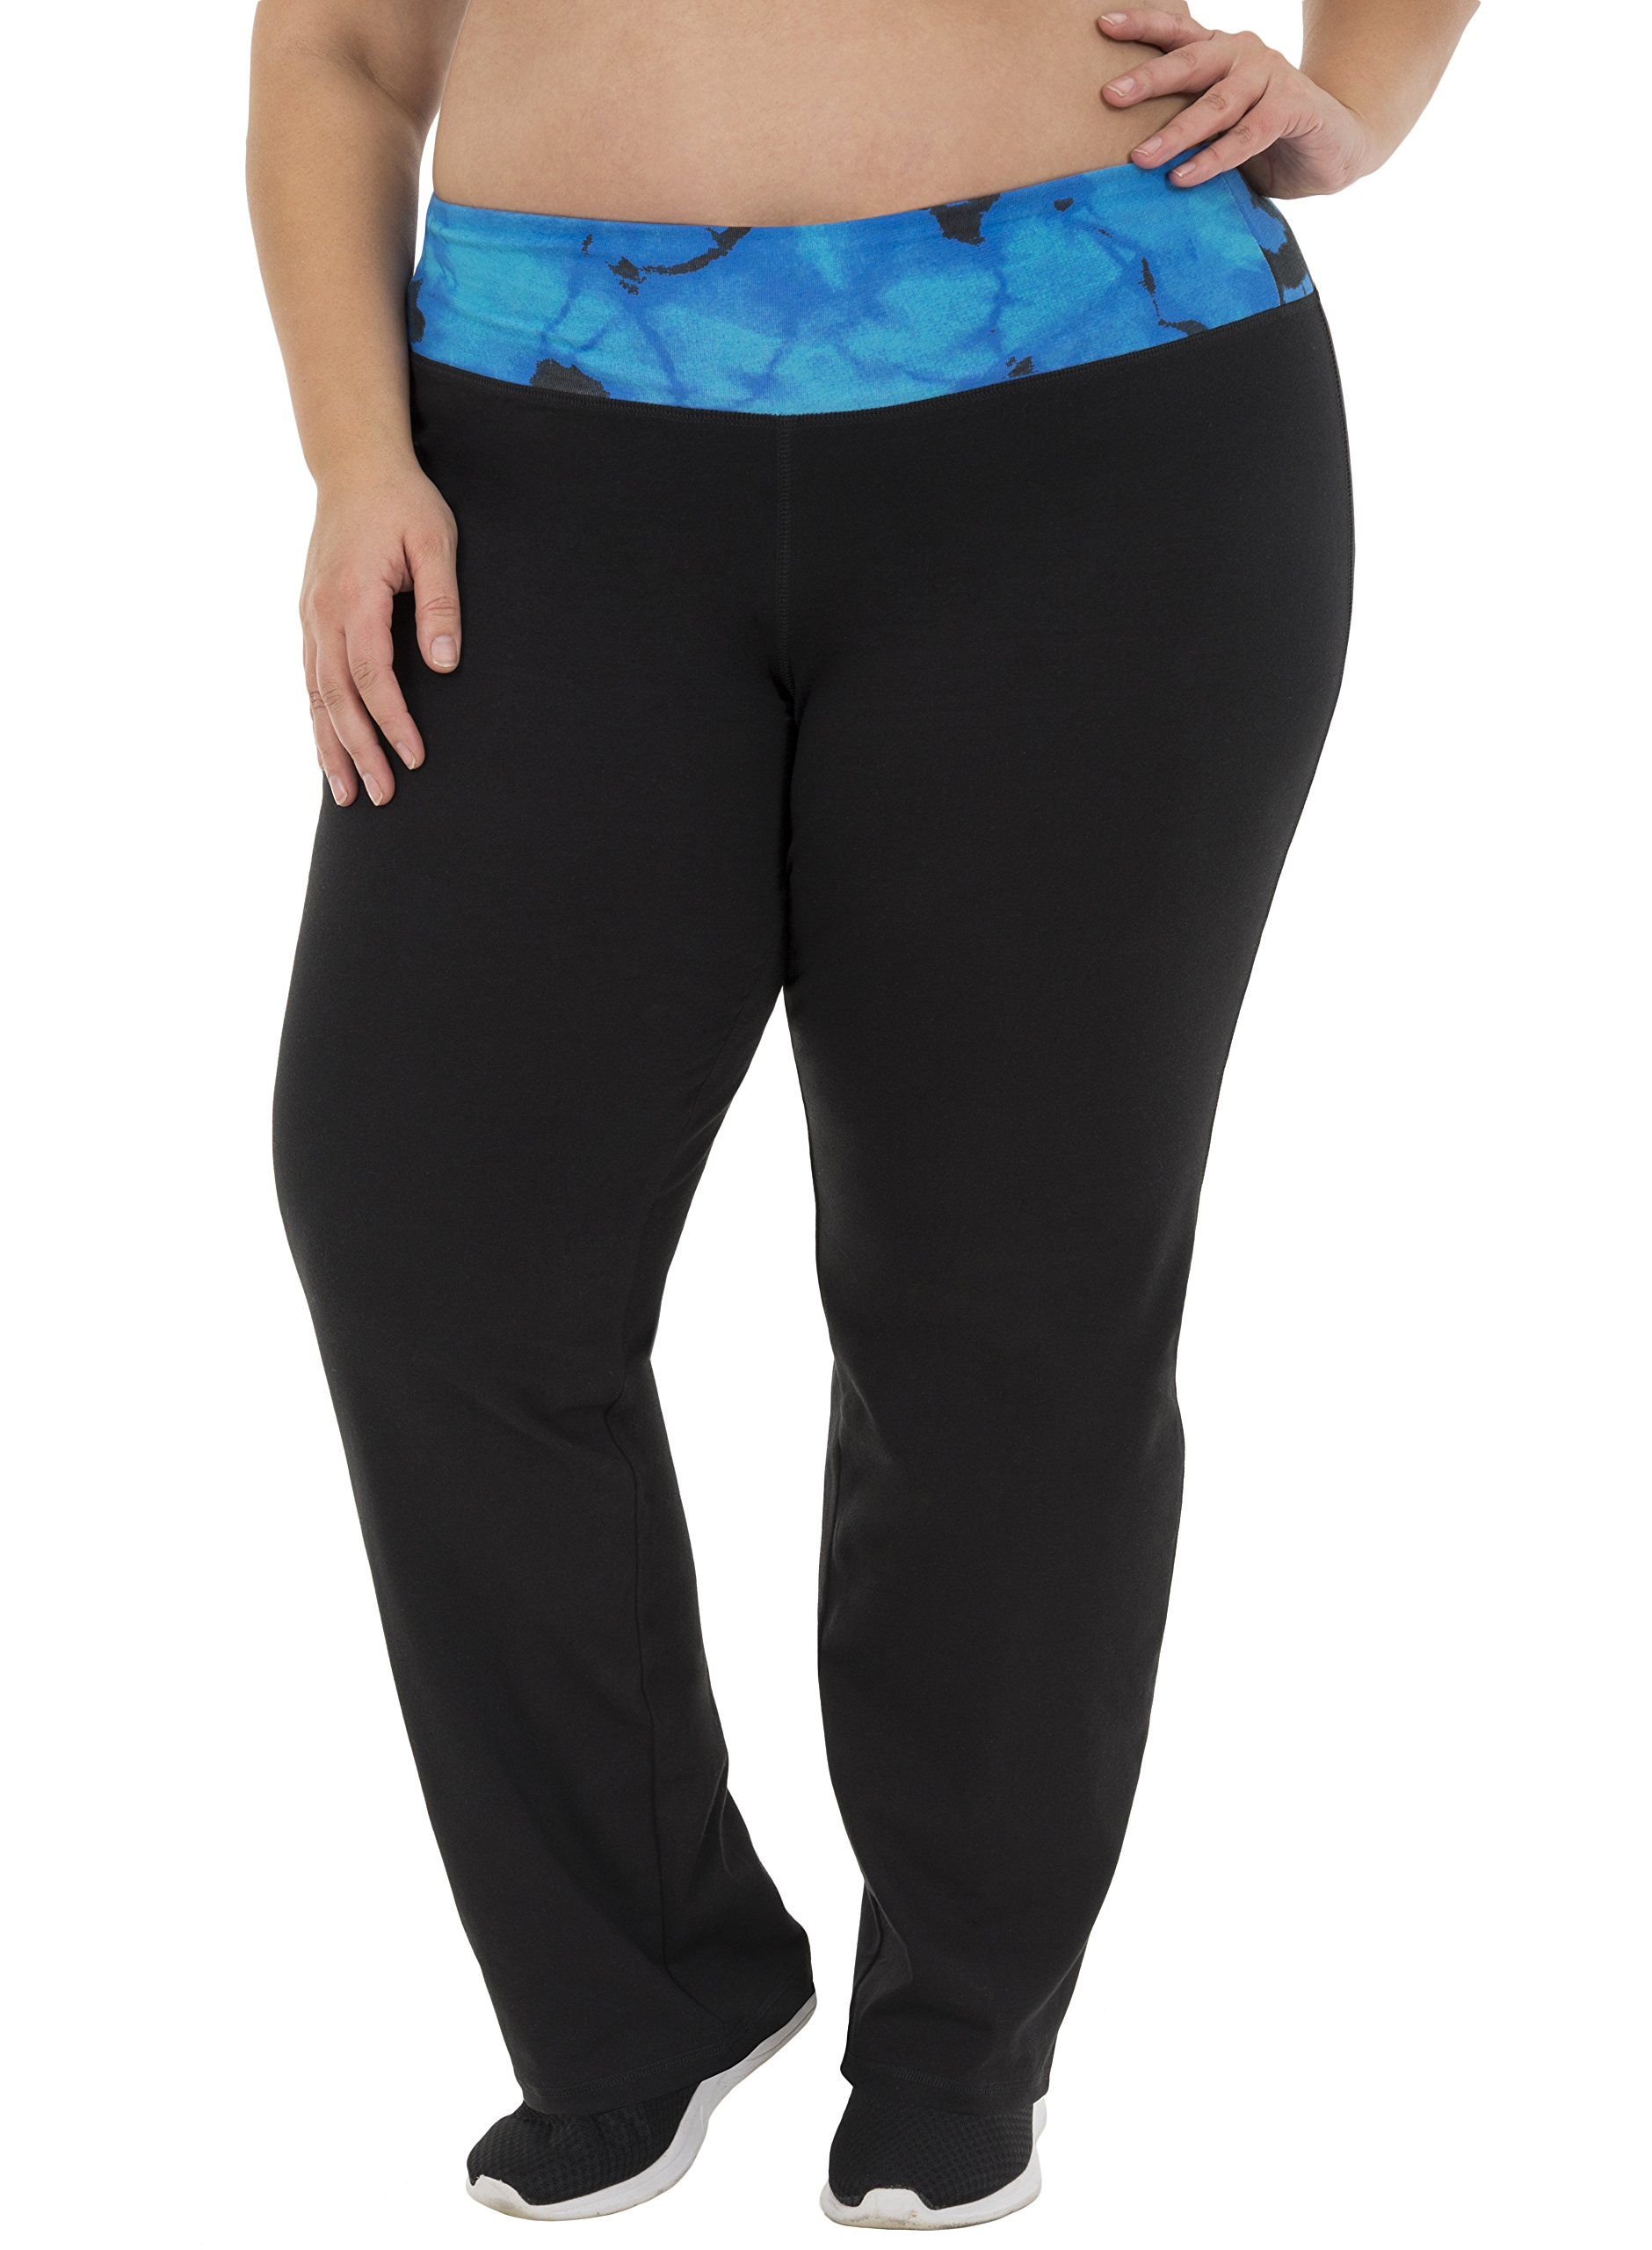 Fit for Me by Fruit of the Loom Women's Plus Size Relaxed Fit Yoga Pant, Black/Dusky Teal Cloud, 3X